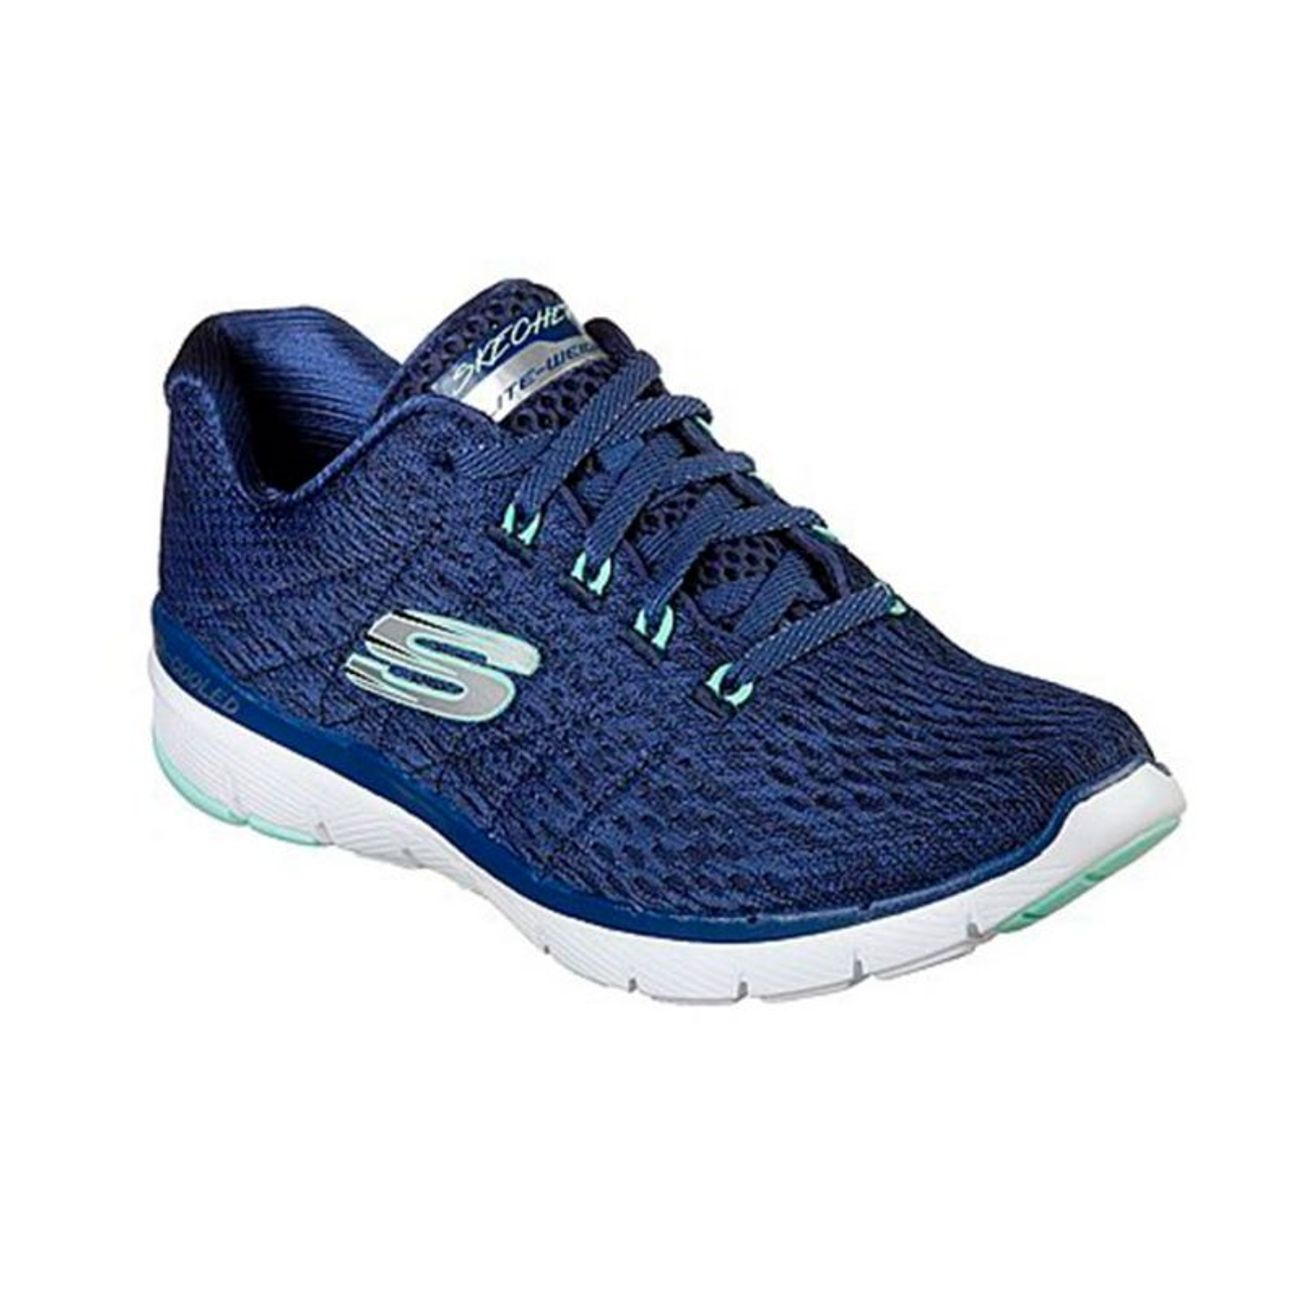 Web Femme Engineered Adulte Padel Eyele Sk13064 Bleu Mesh Nvg Marine Skechers deQBWErCox